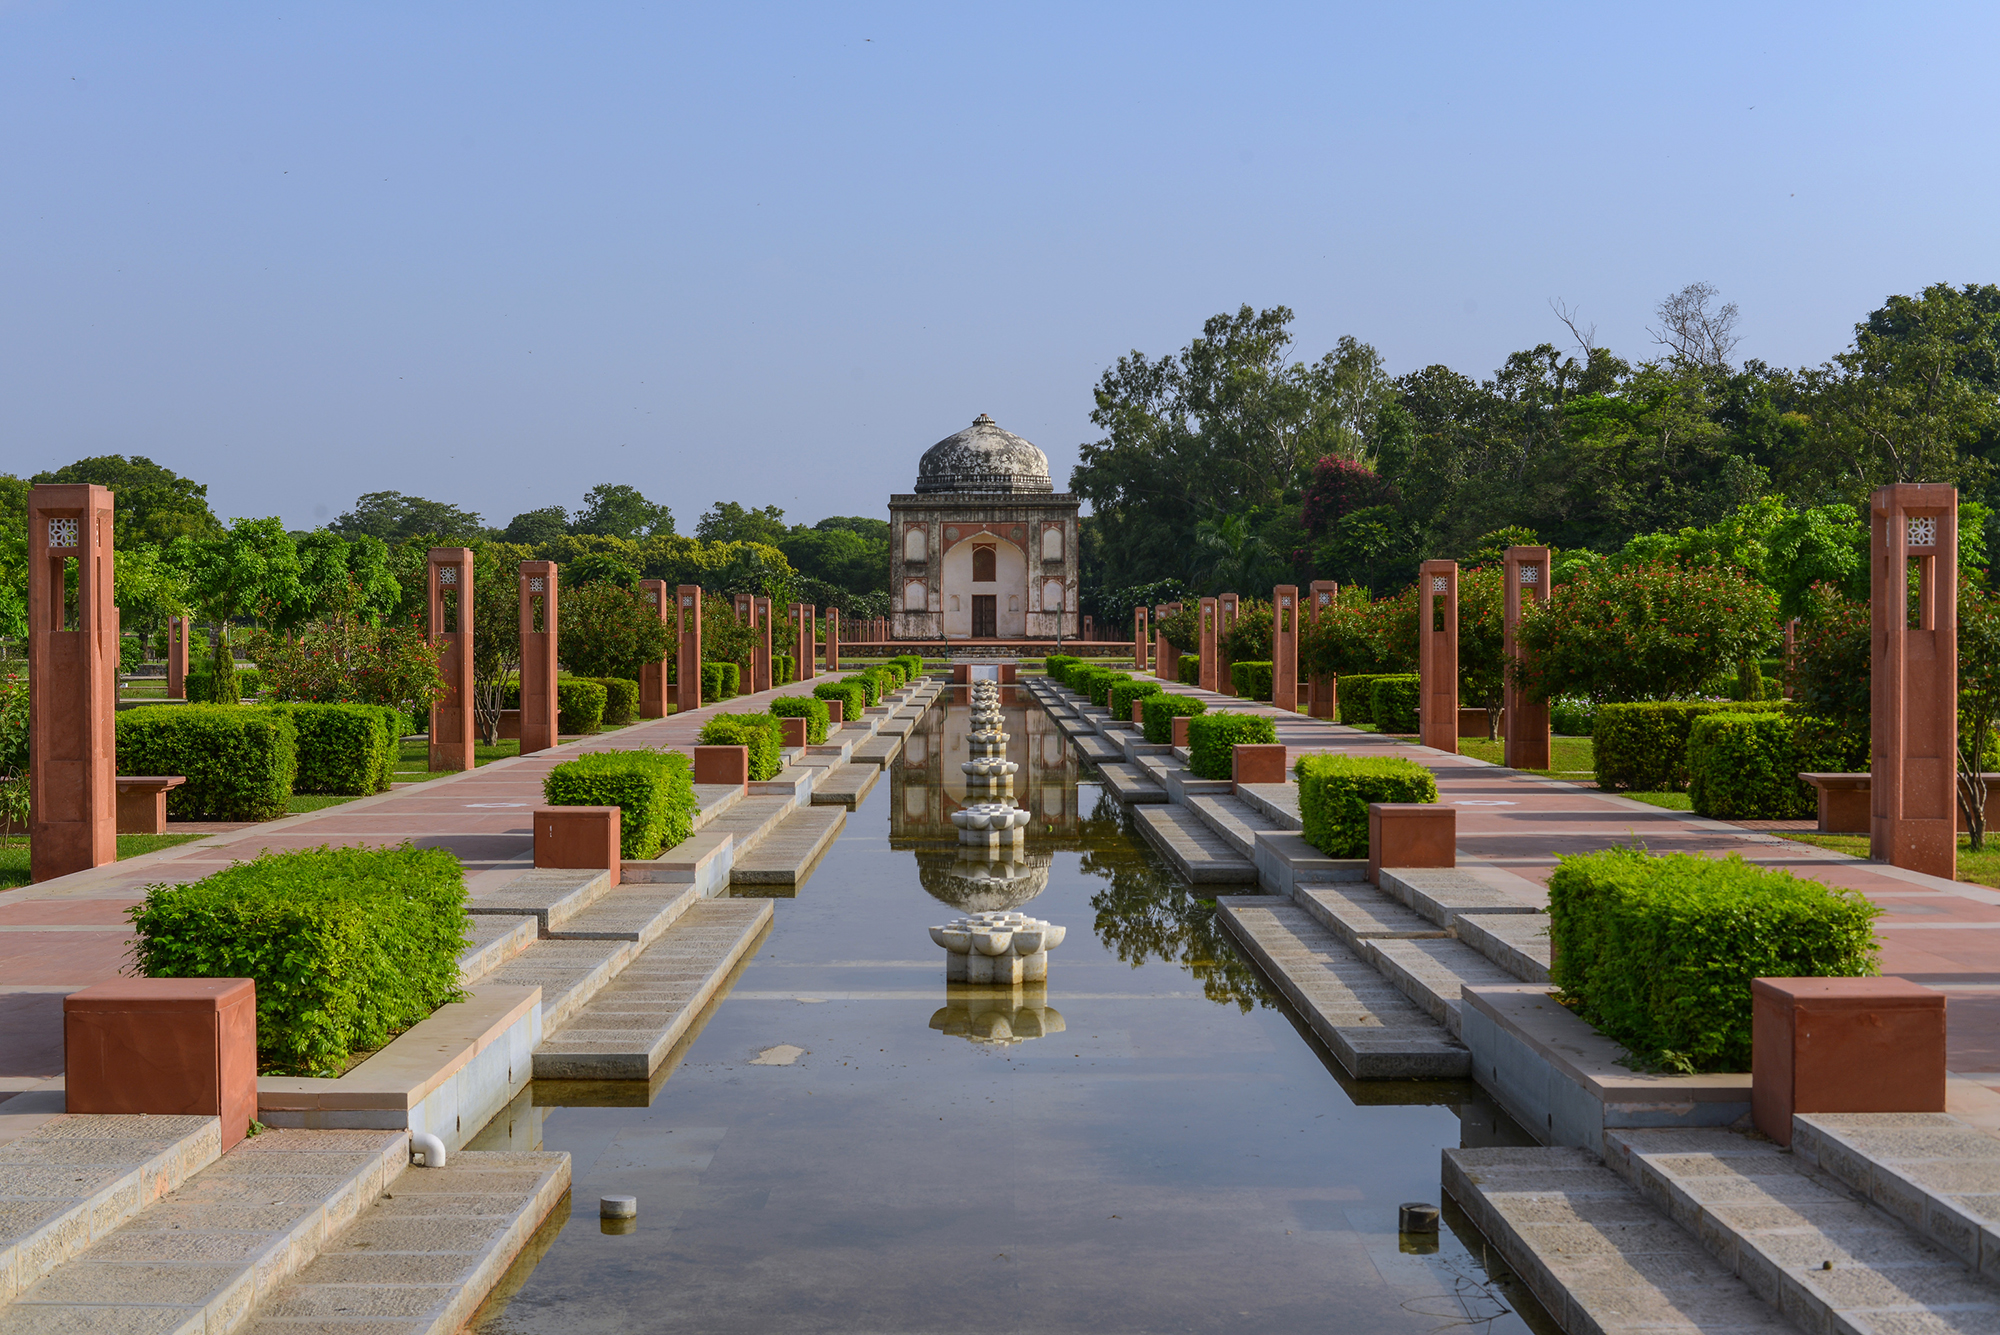 Sundar Nursery's Central Axis with the 16th century Sundar Burj in the backdrop, New Delhi, India.